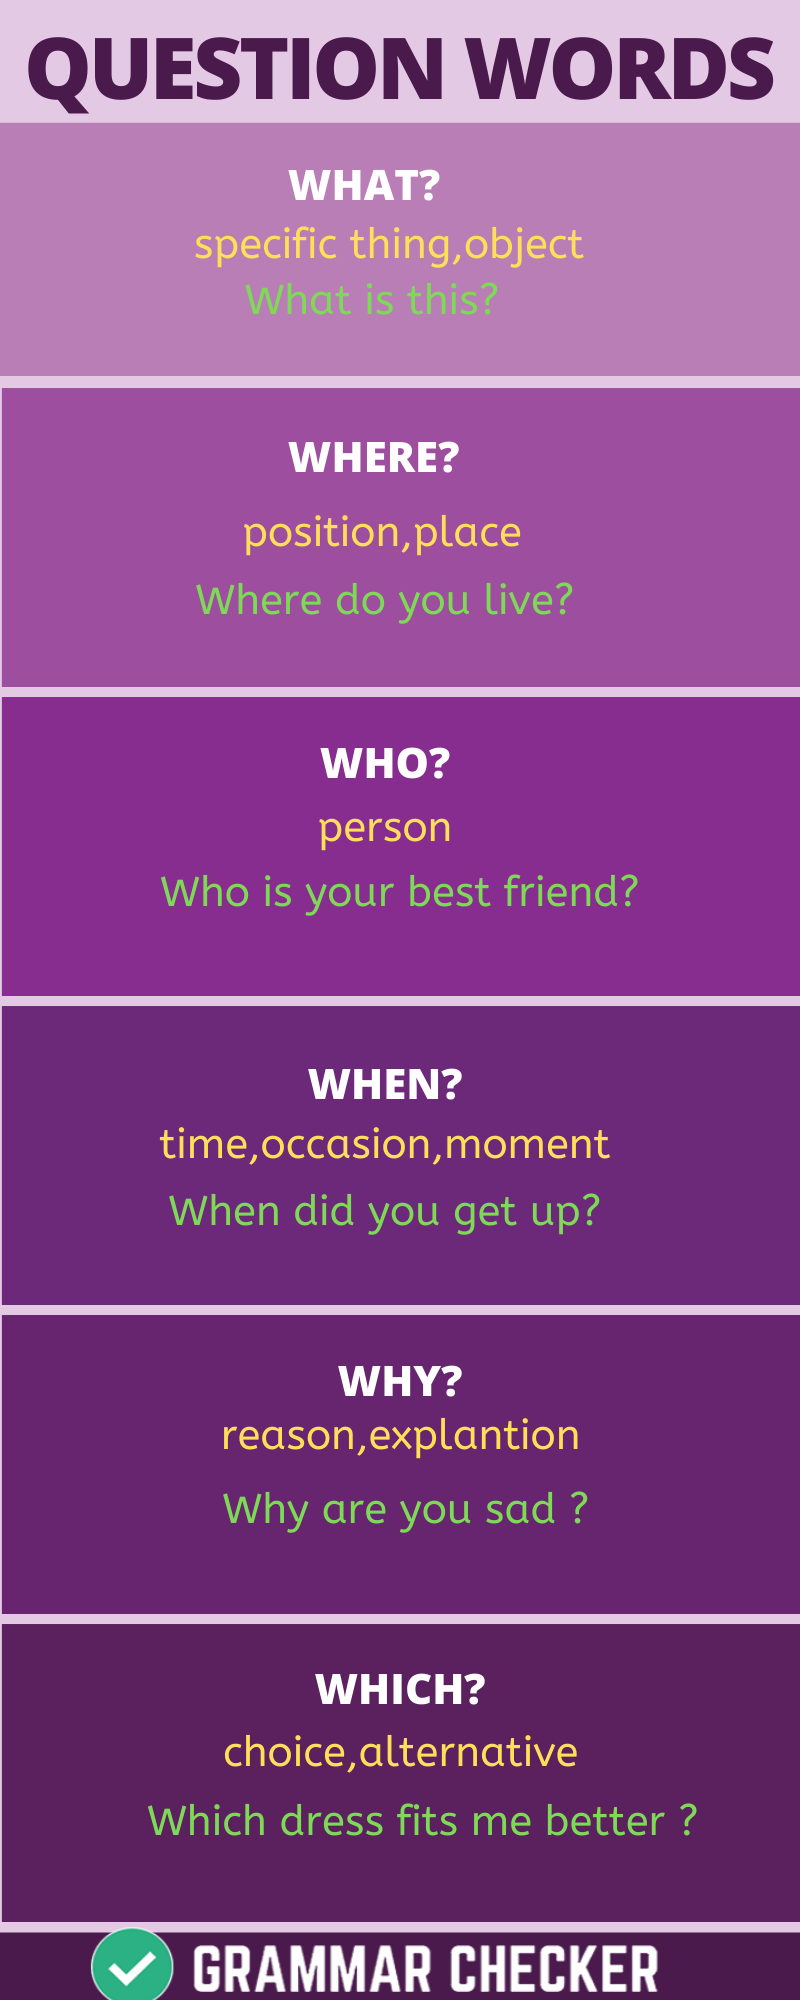 QUESTION WORDS (Infographic)